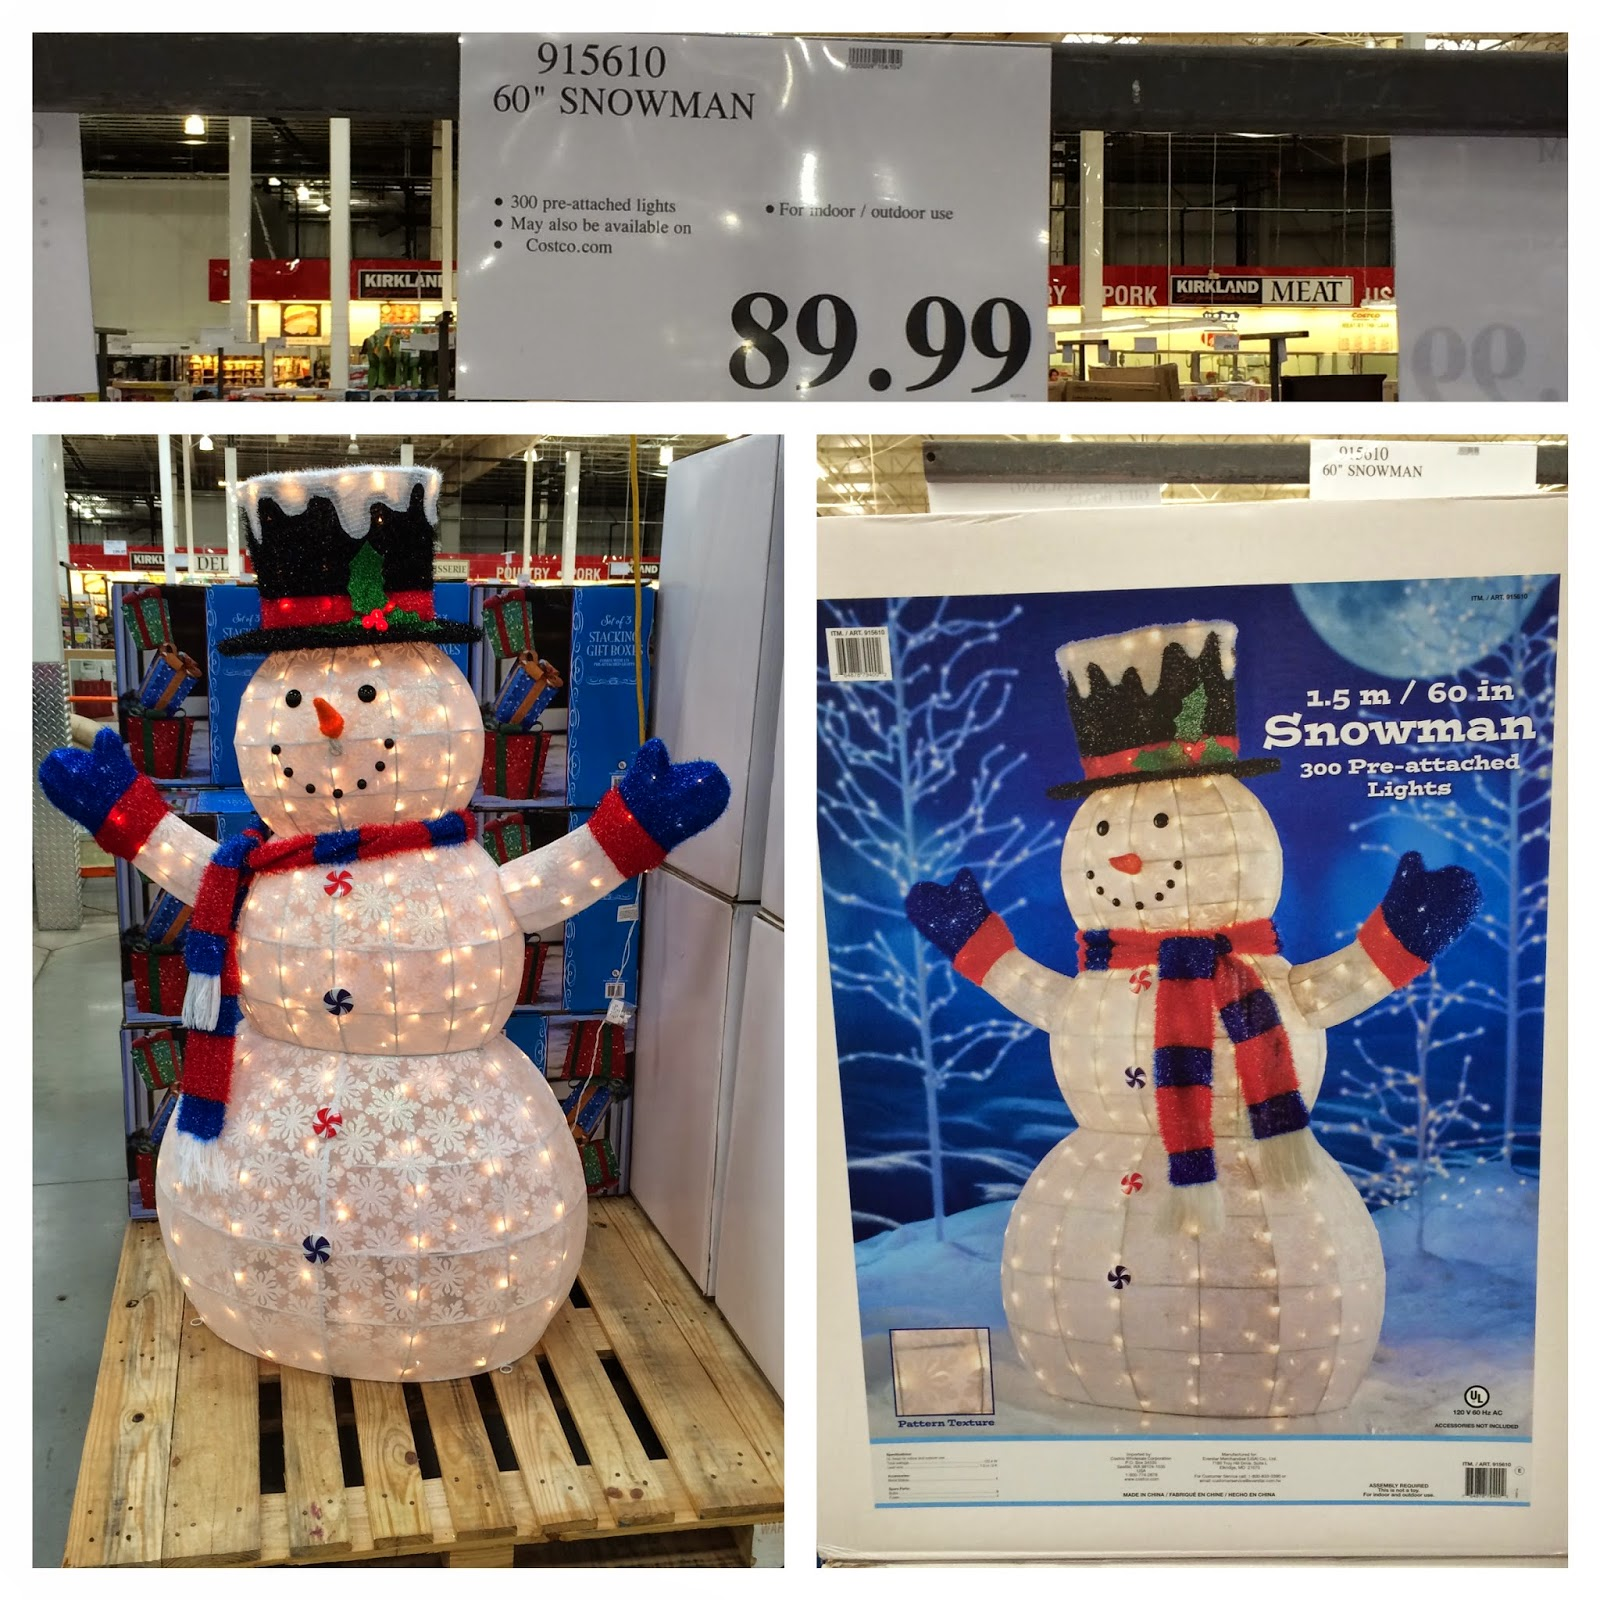 Christmas Centerpiece Costco : Costco decorations images at